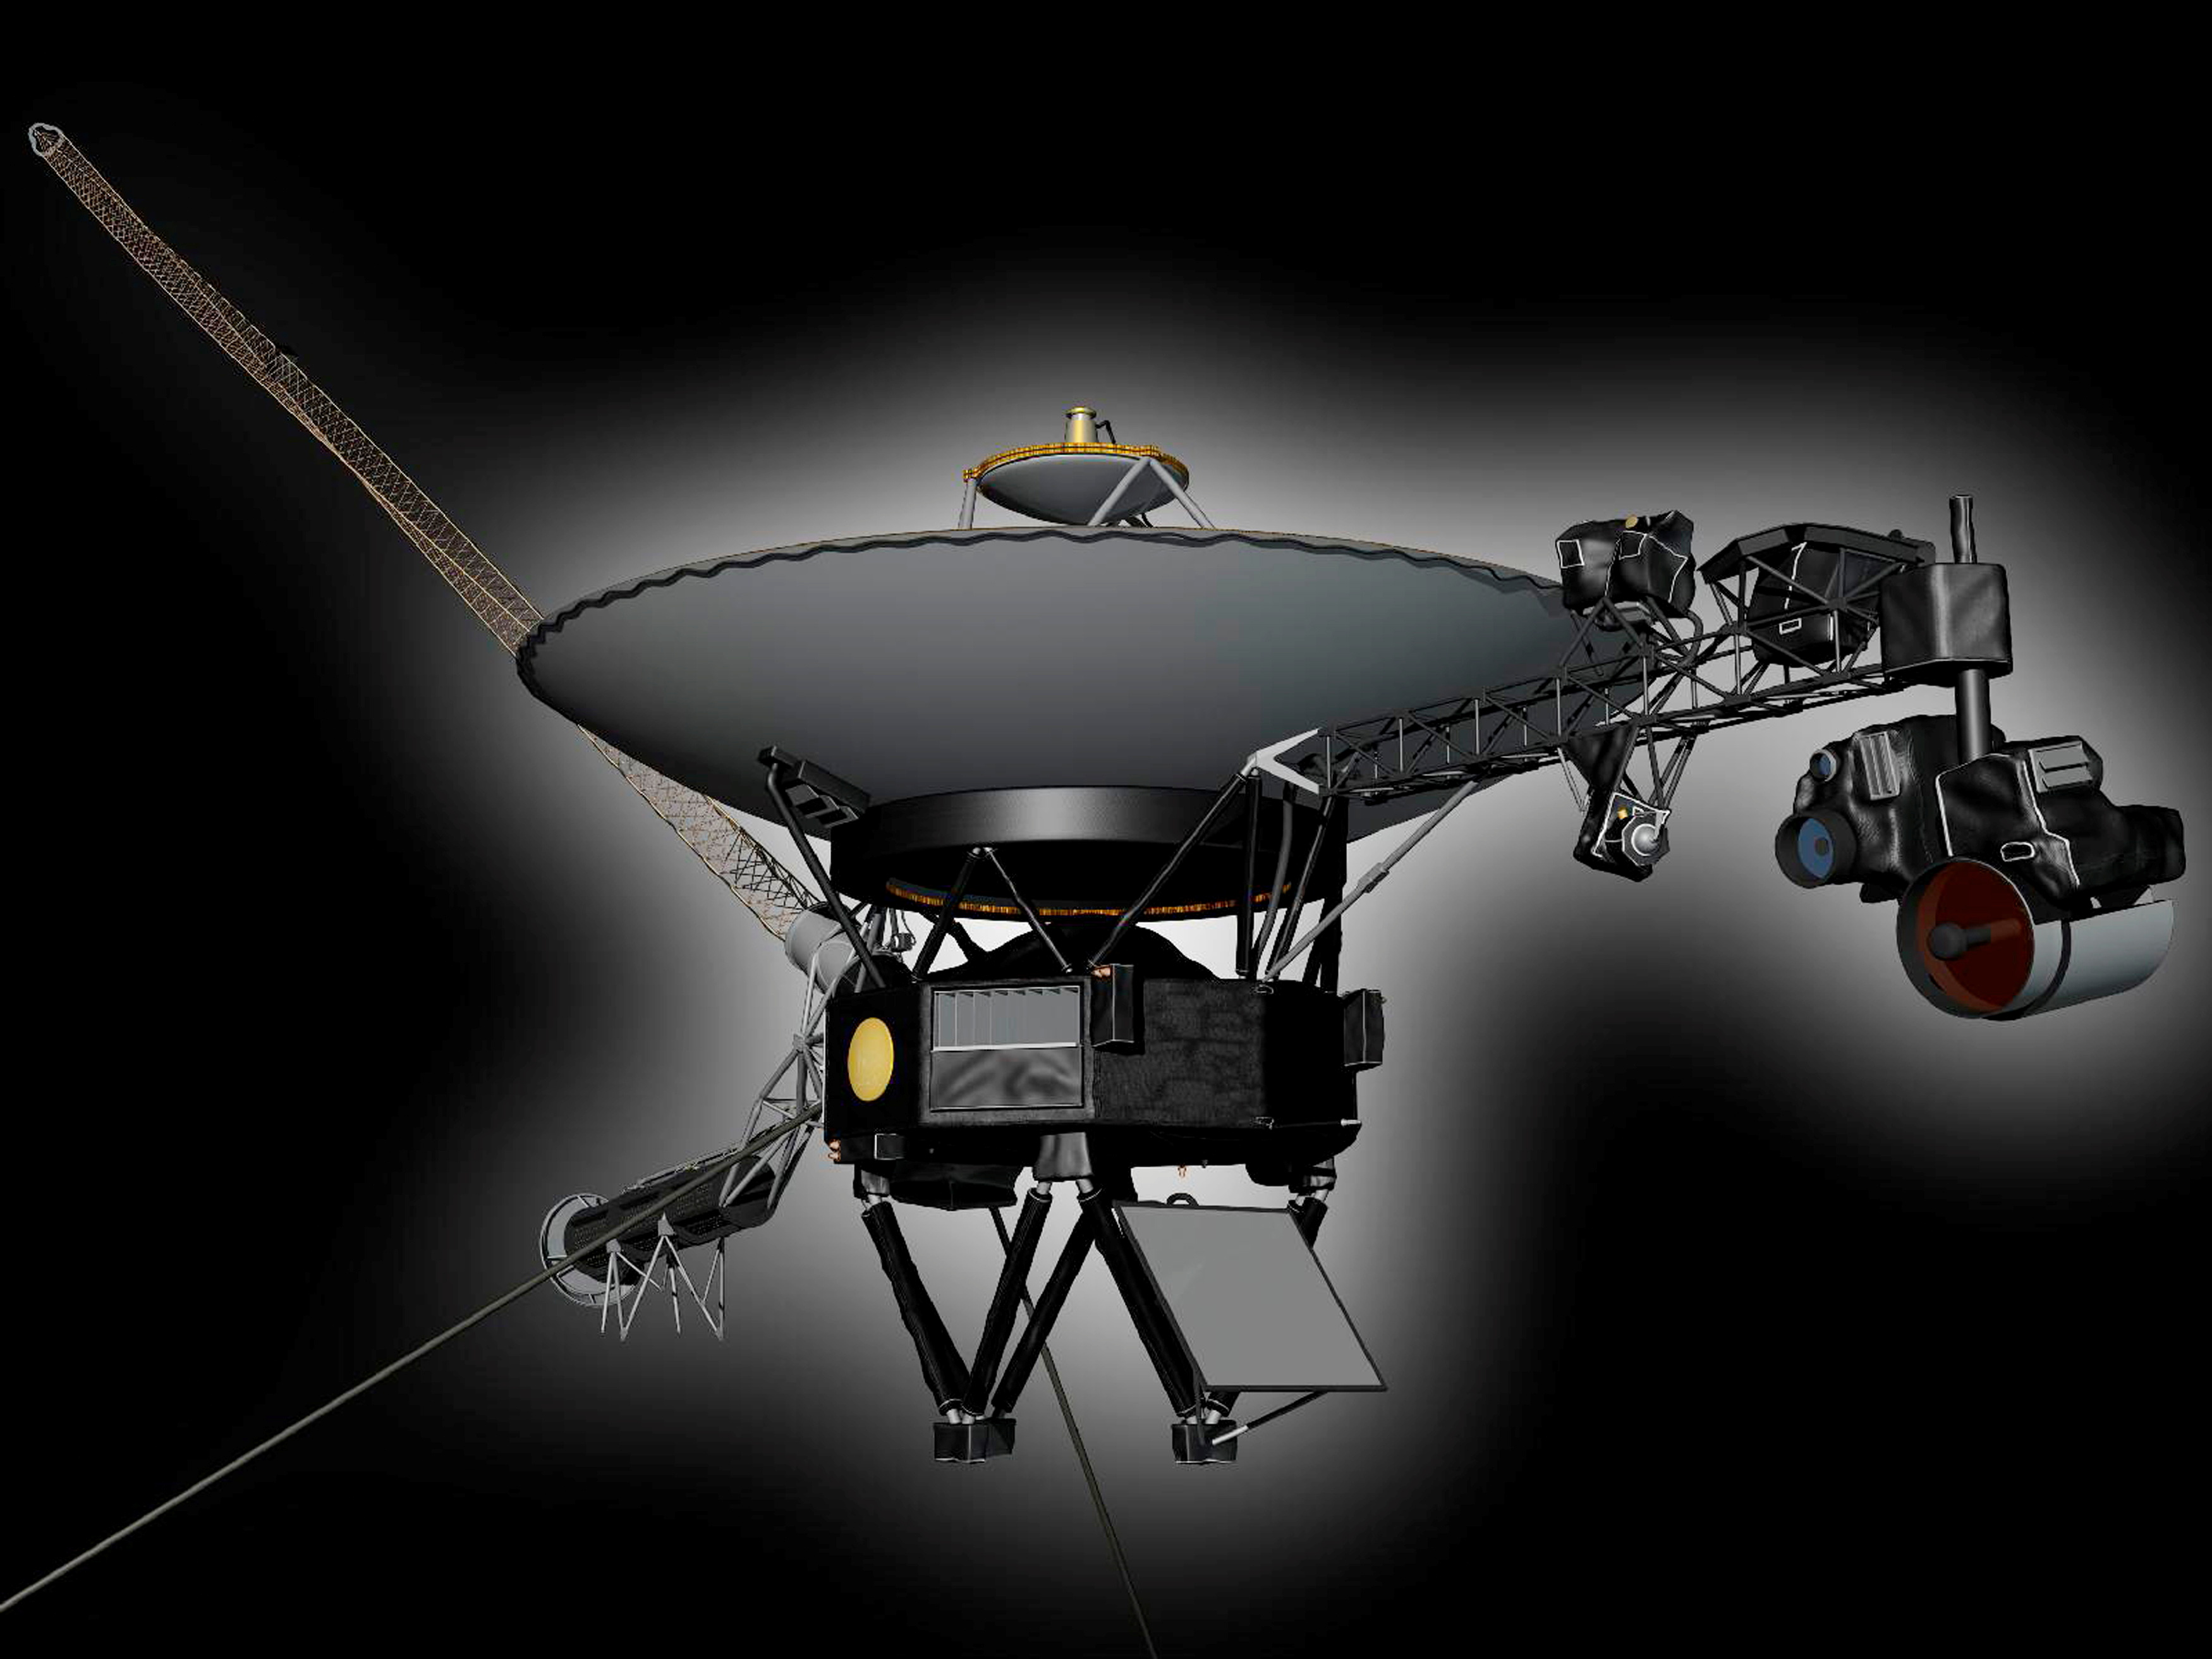 An undated artist's concept shows NASA's Voyager 1 spacecraft, the first human-made object to venture into interstellar space. REUTERS/NASA/JPL-Caltech/Handout via Reuters